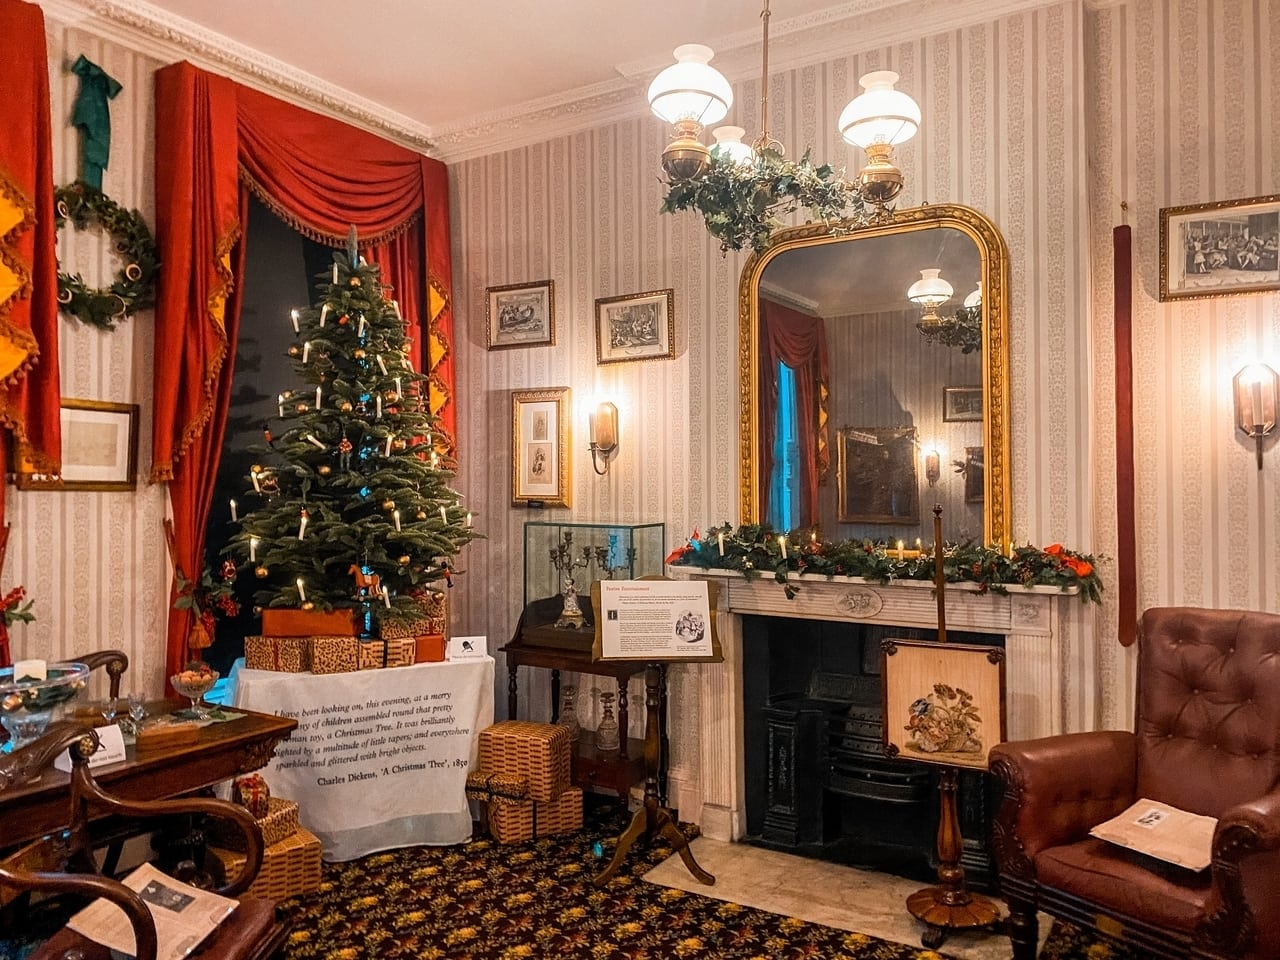 Charles Dickens museum in London at Christmas, with a christmas tree